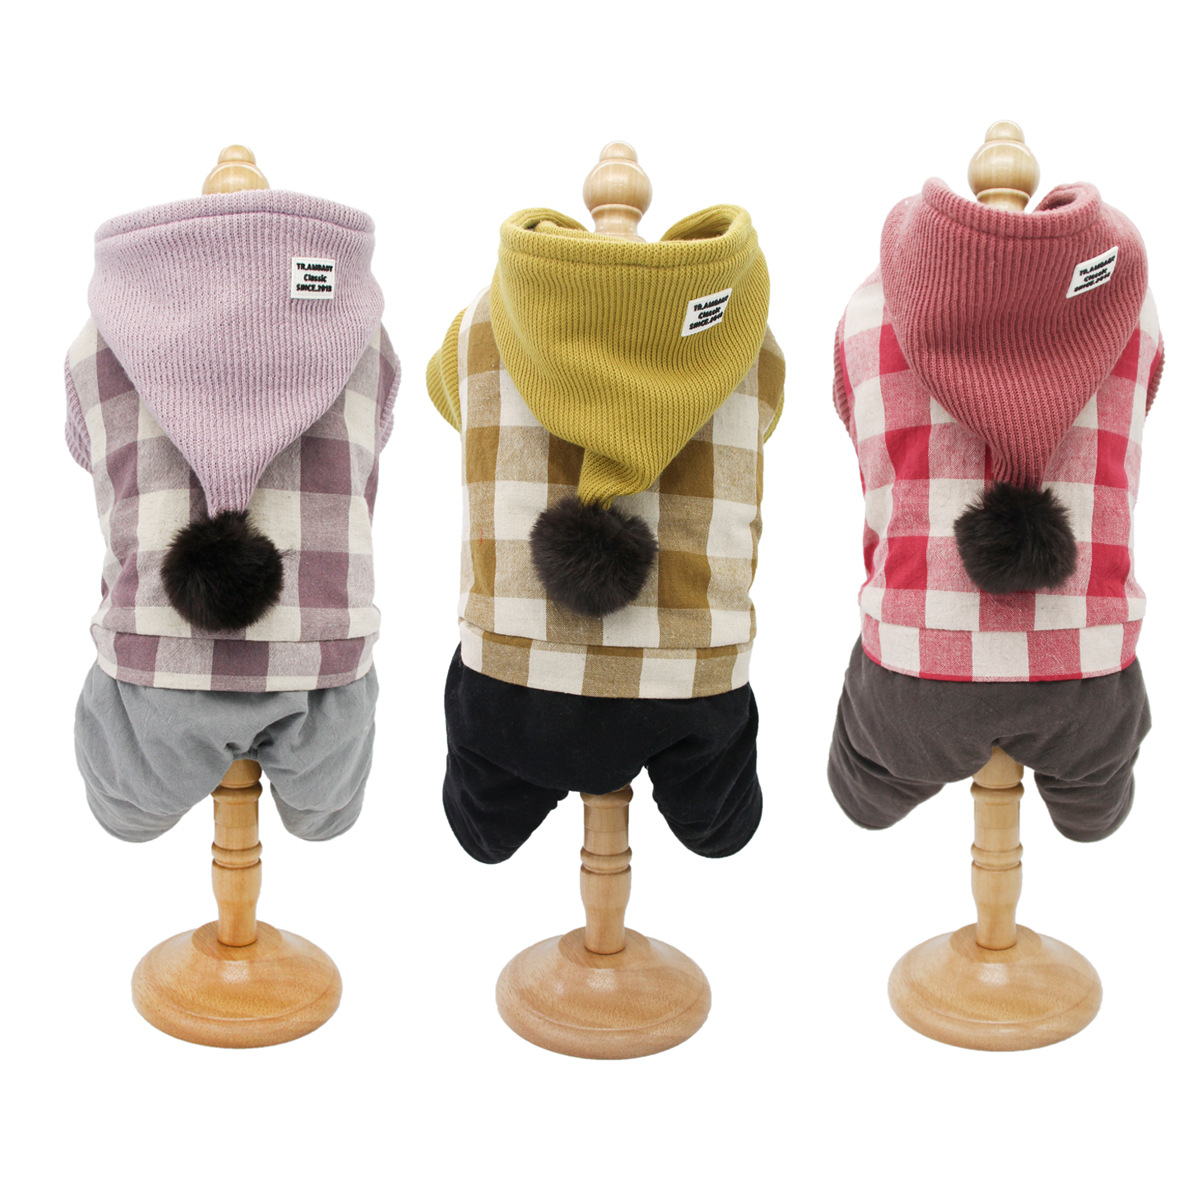 Dog Clothes For Autumn And Winter Outwear Knitted Plaid Style Four-legged Clothes For Small Dog Warm Jumpsuits For Pet Mascotas